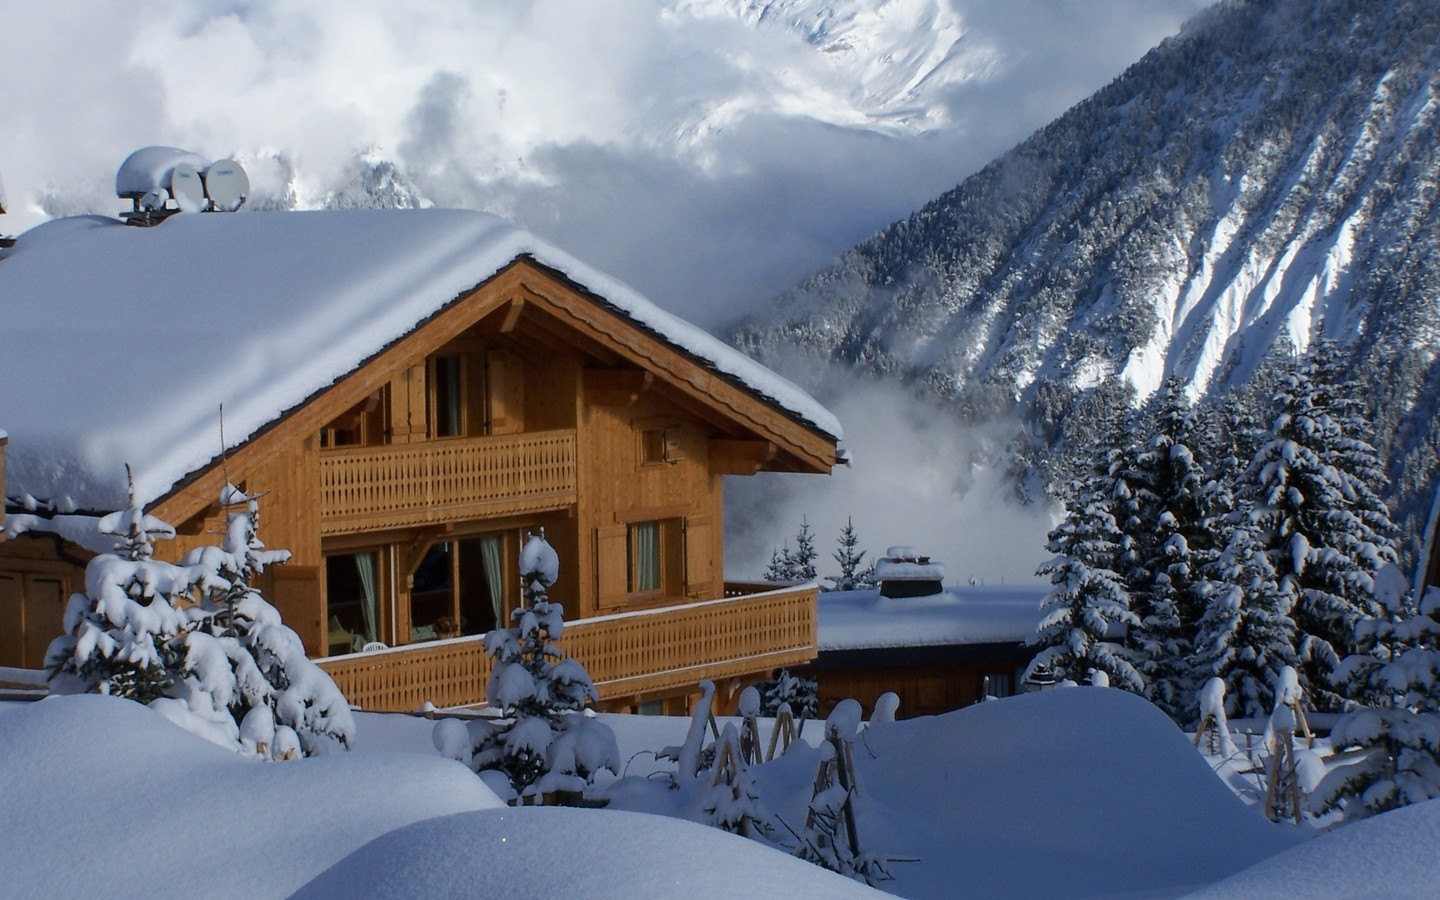 ws_Winter_in_the_Mountains_1440x900.jpg